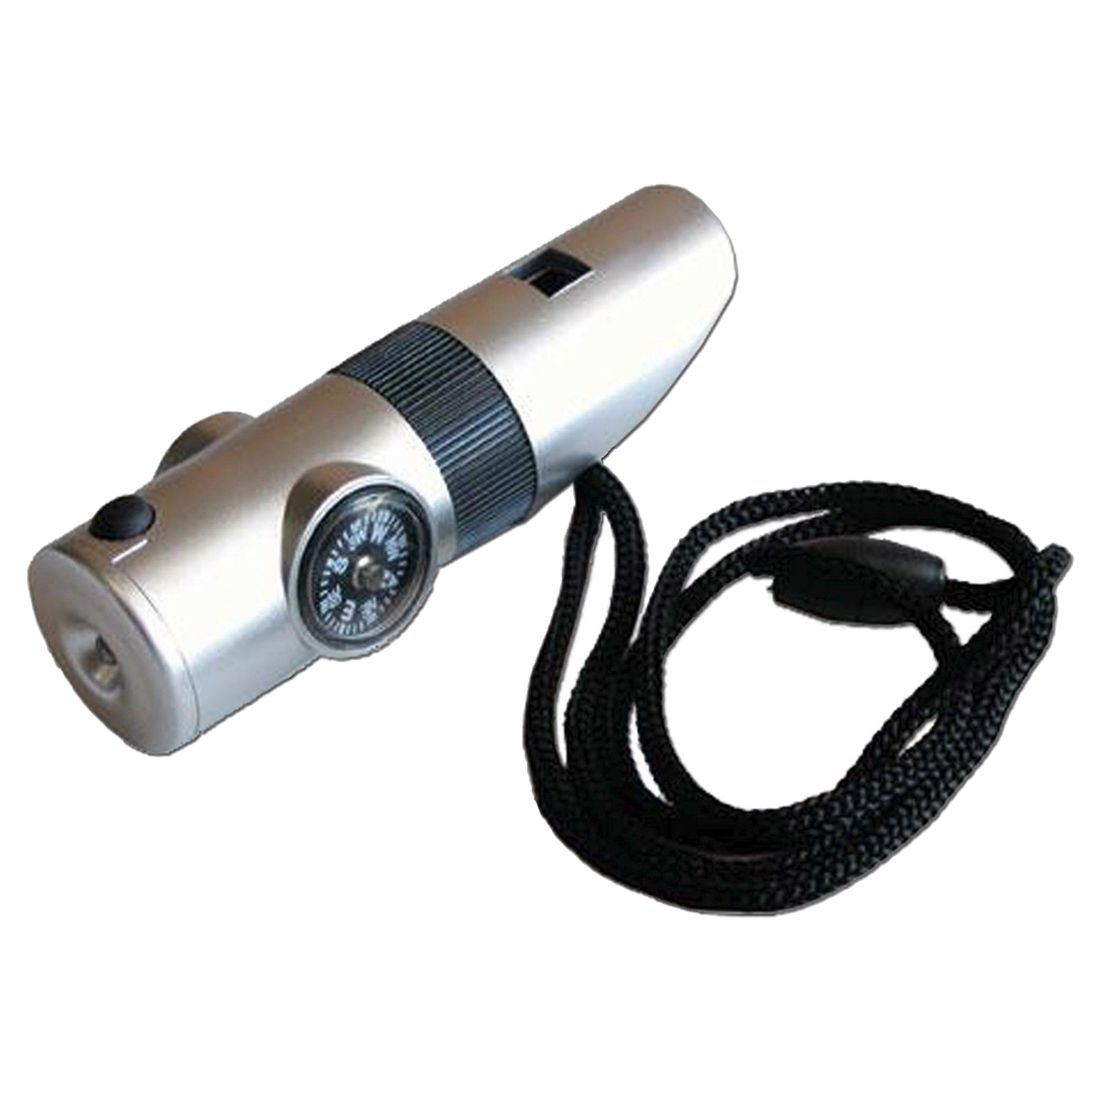 7 in 1 Silver Emergency Whistle Survival Kit - Compass LED Light & More!